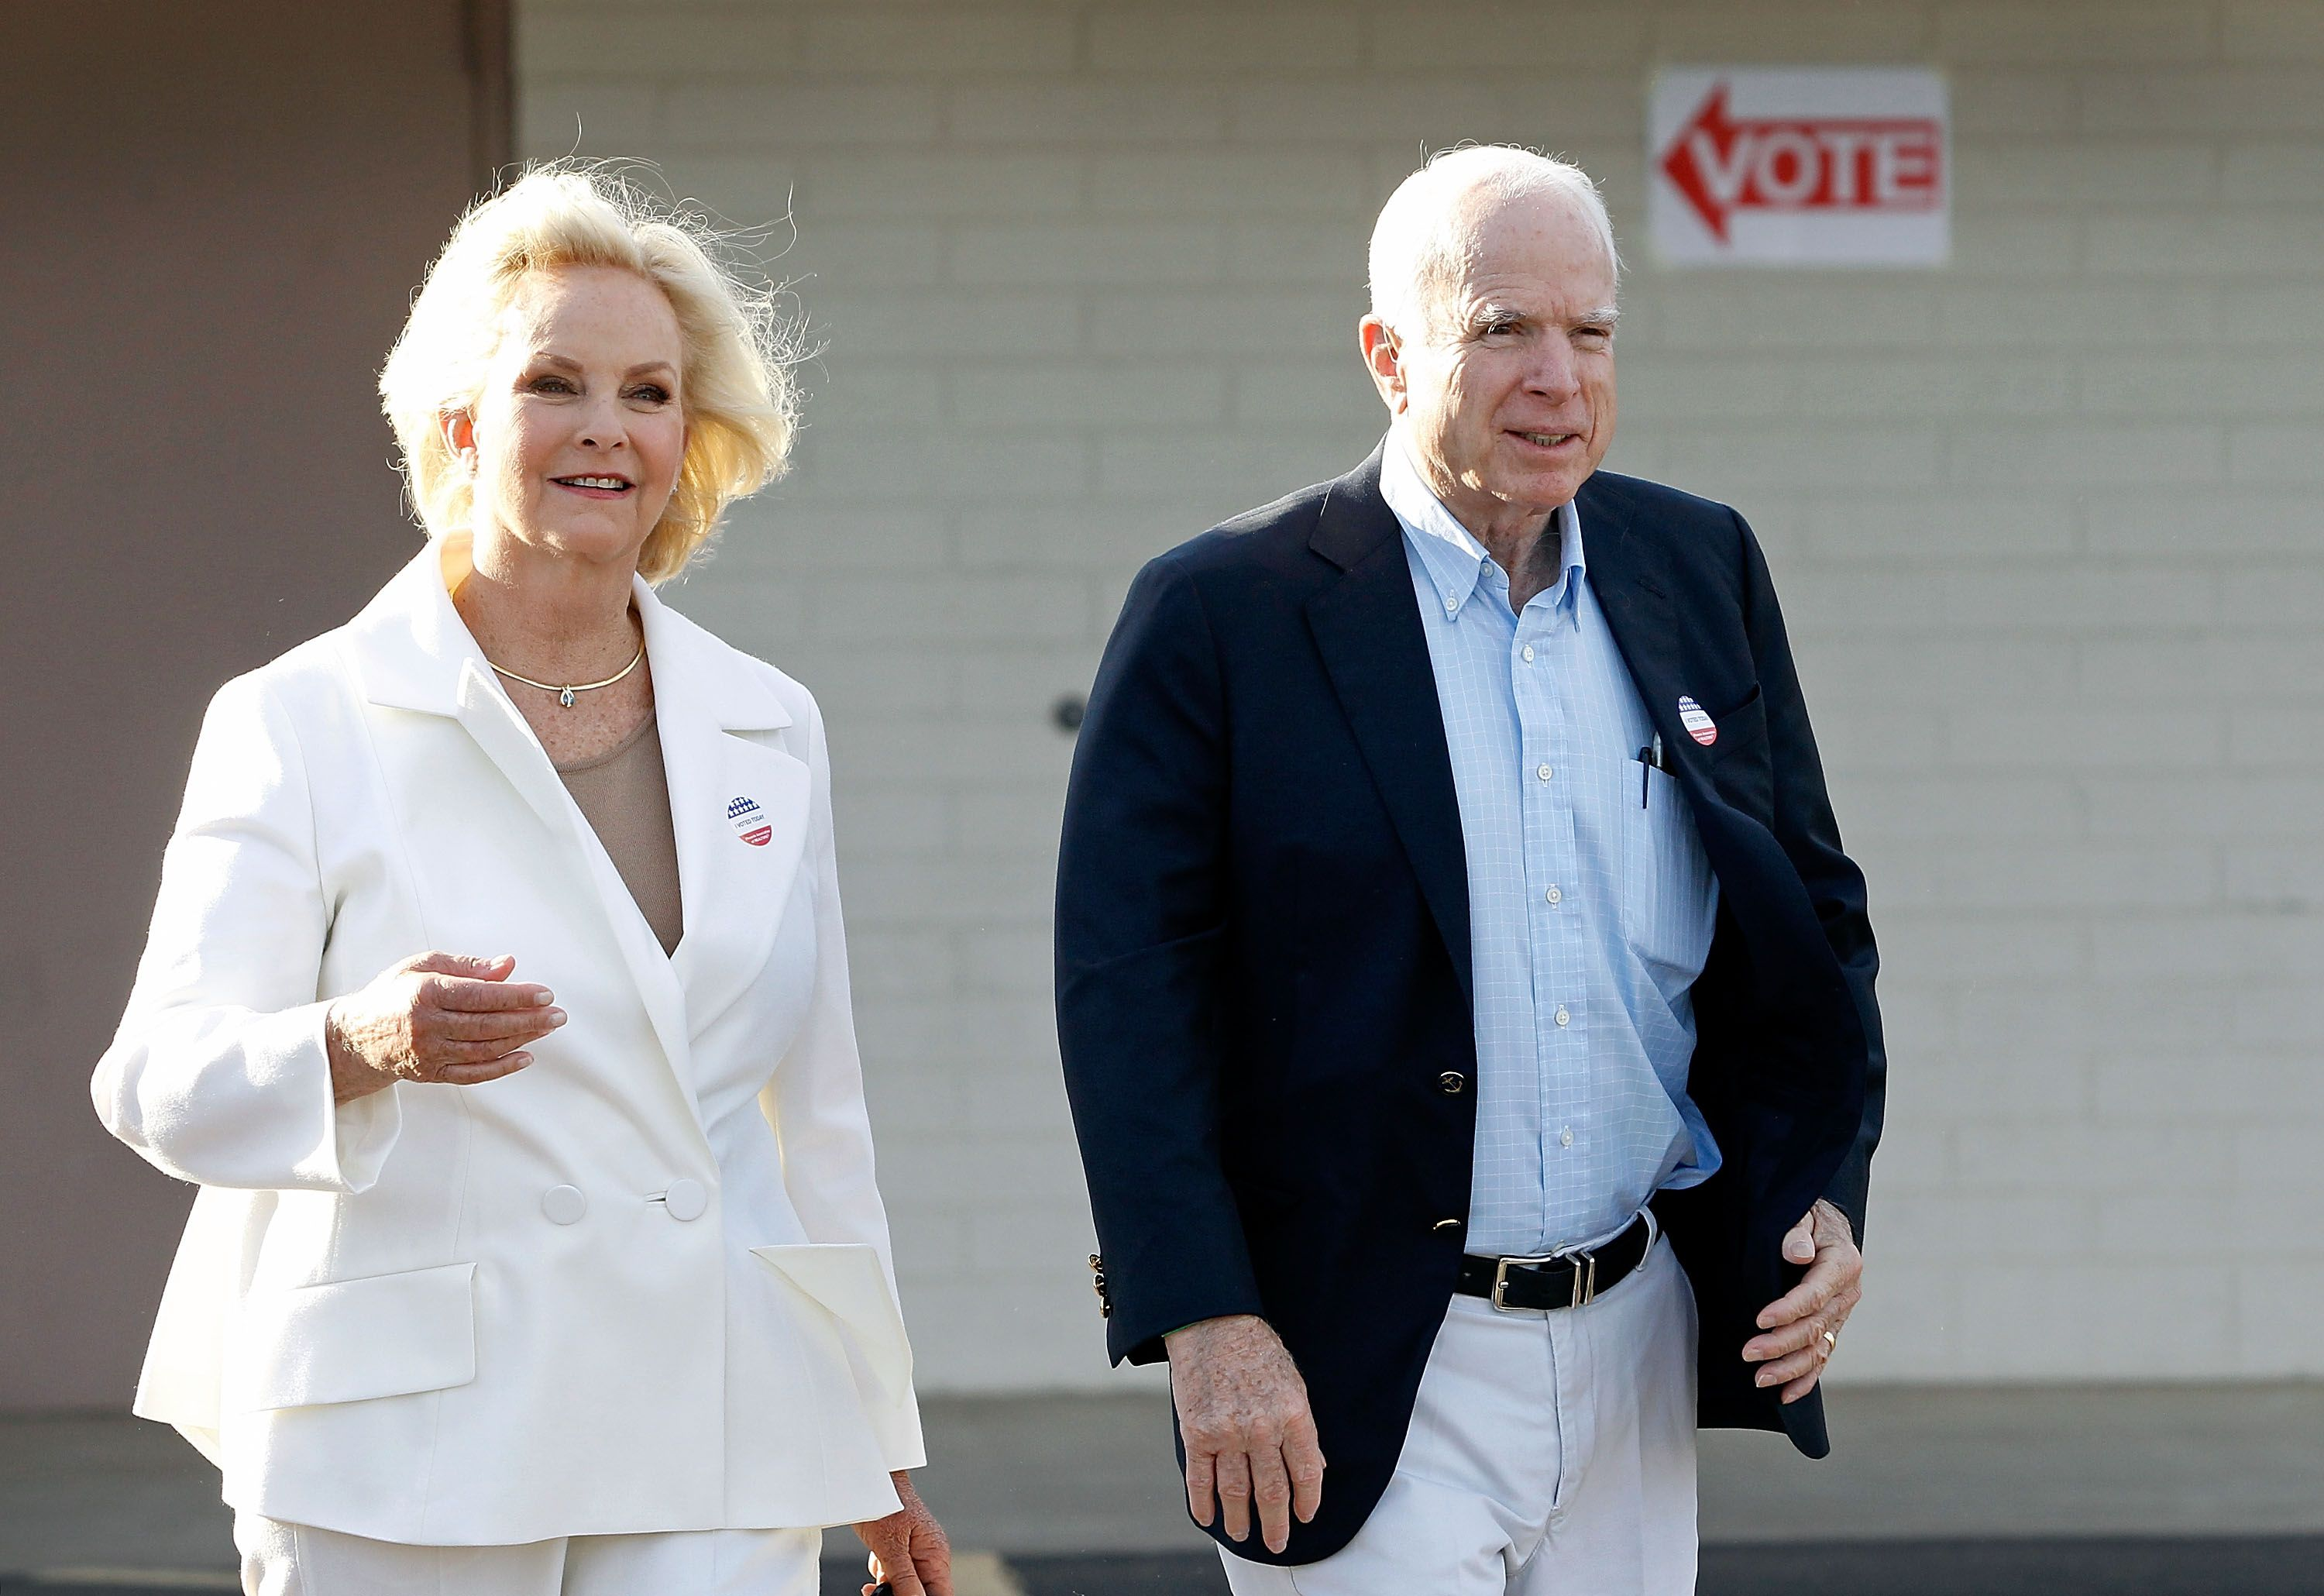 Sen. John McCain and Cindy McCain exit the Mountain View Christian Church polling place after casting their vote on November 8, 2016 | Getty Images